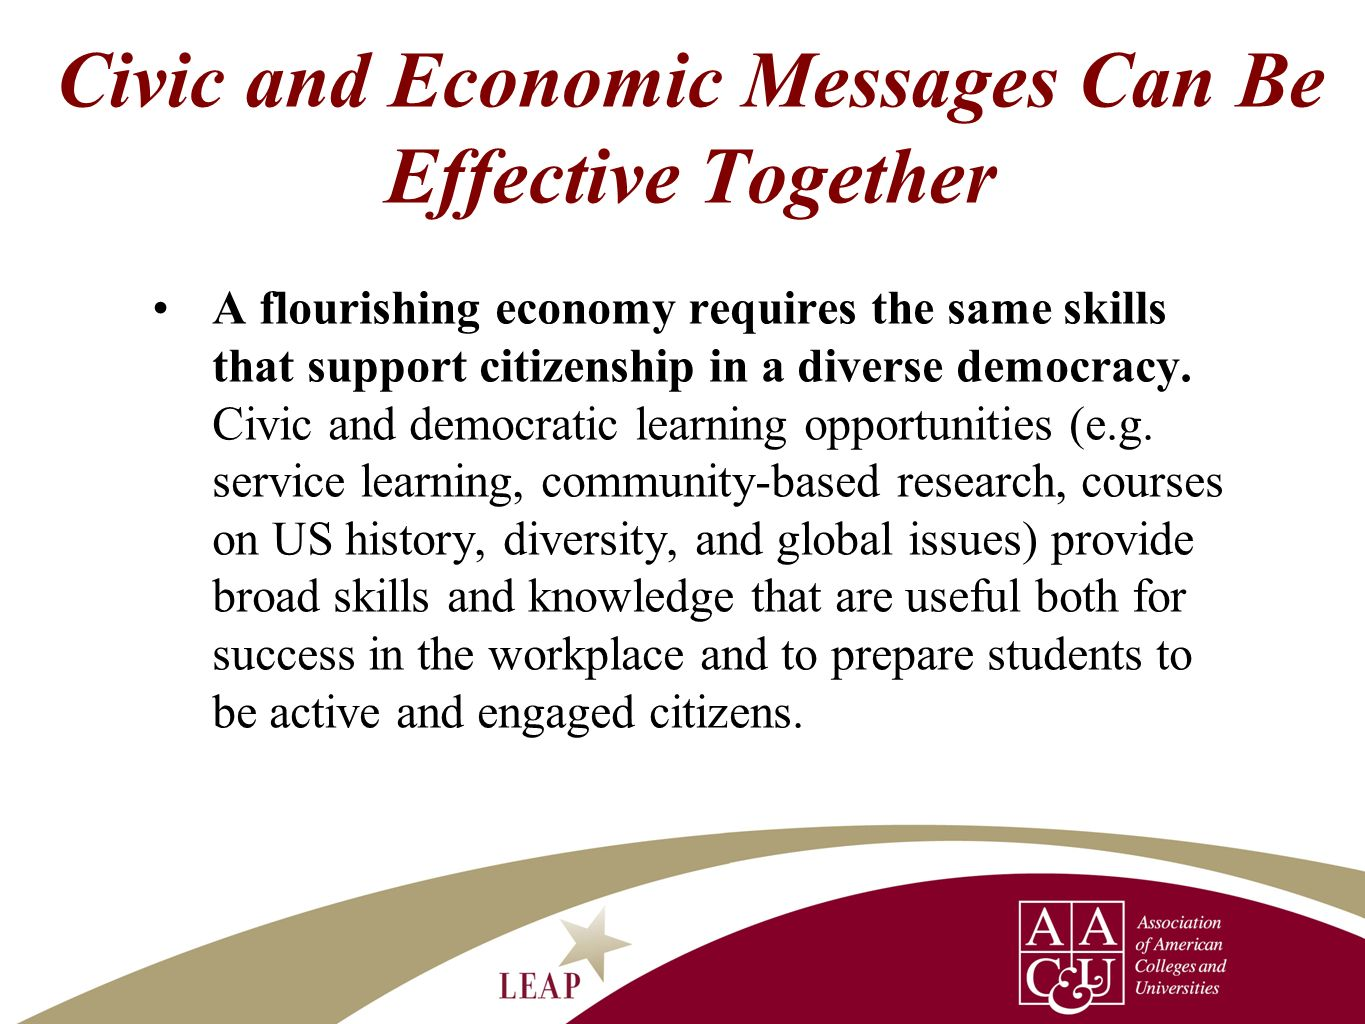 Civic and Economic Messages Can Be Effective Together